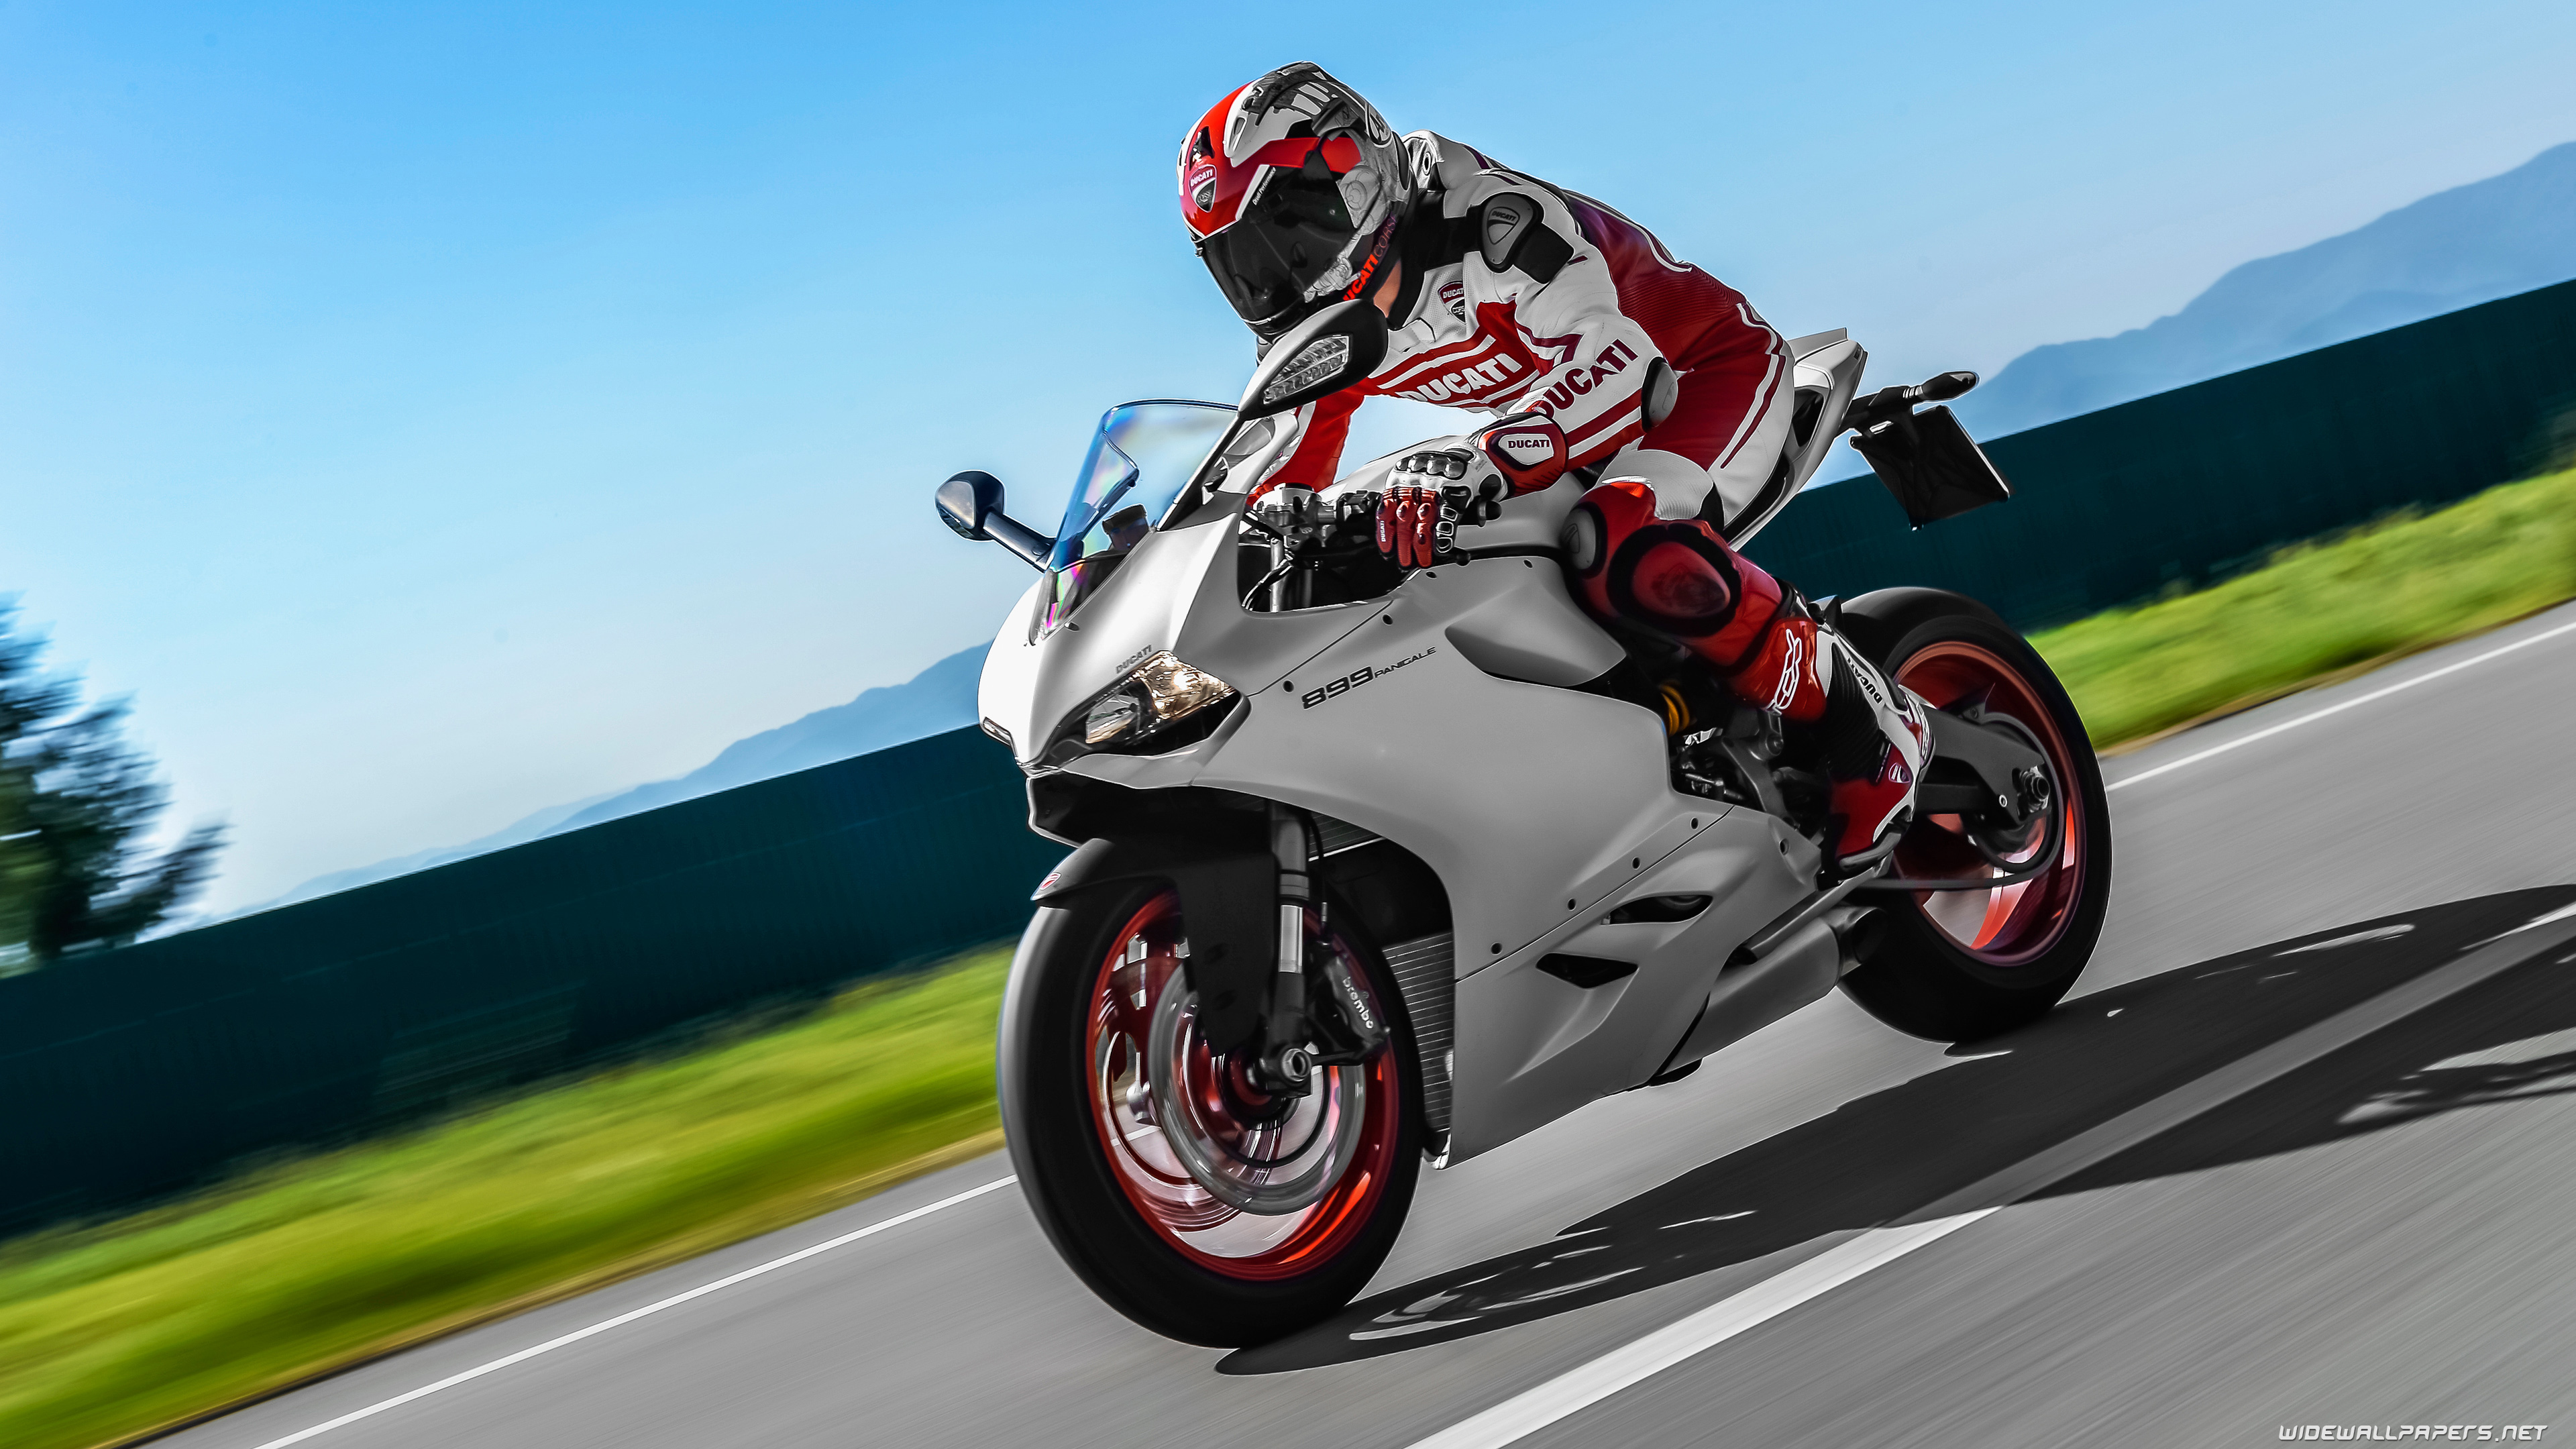 ducati superbike 899 panigale motorcycle desktop wallpapers 4k ultra hd